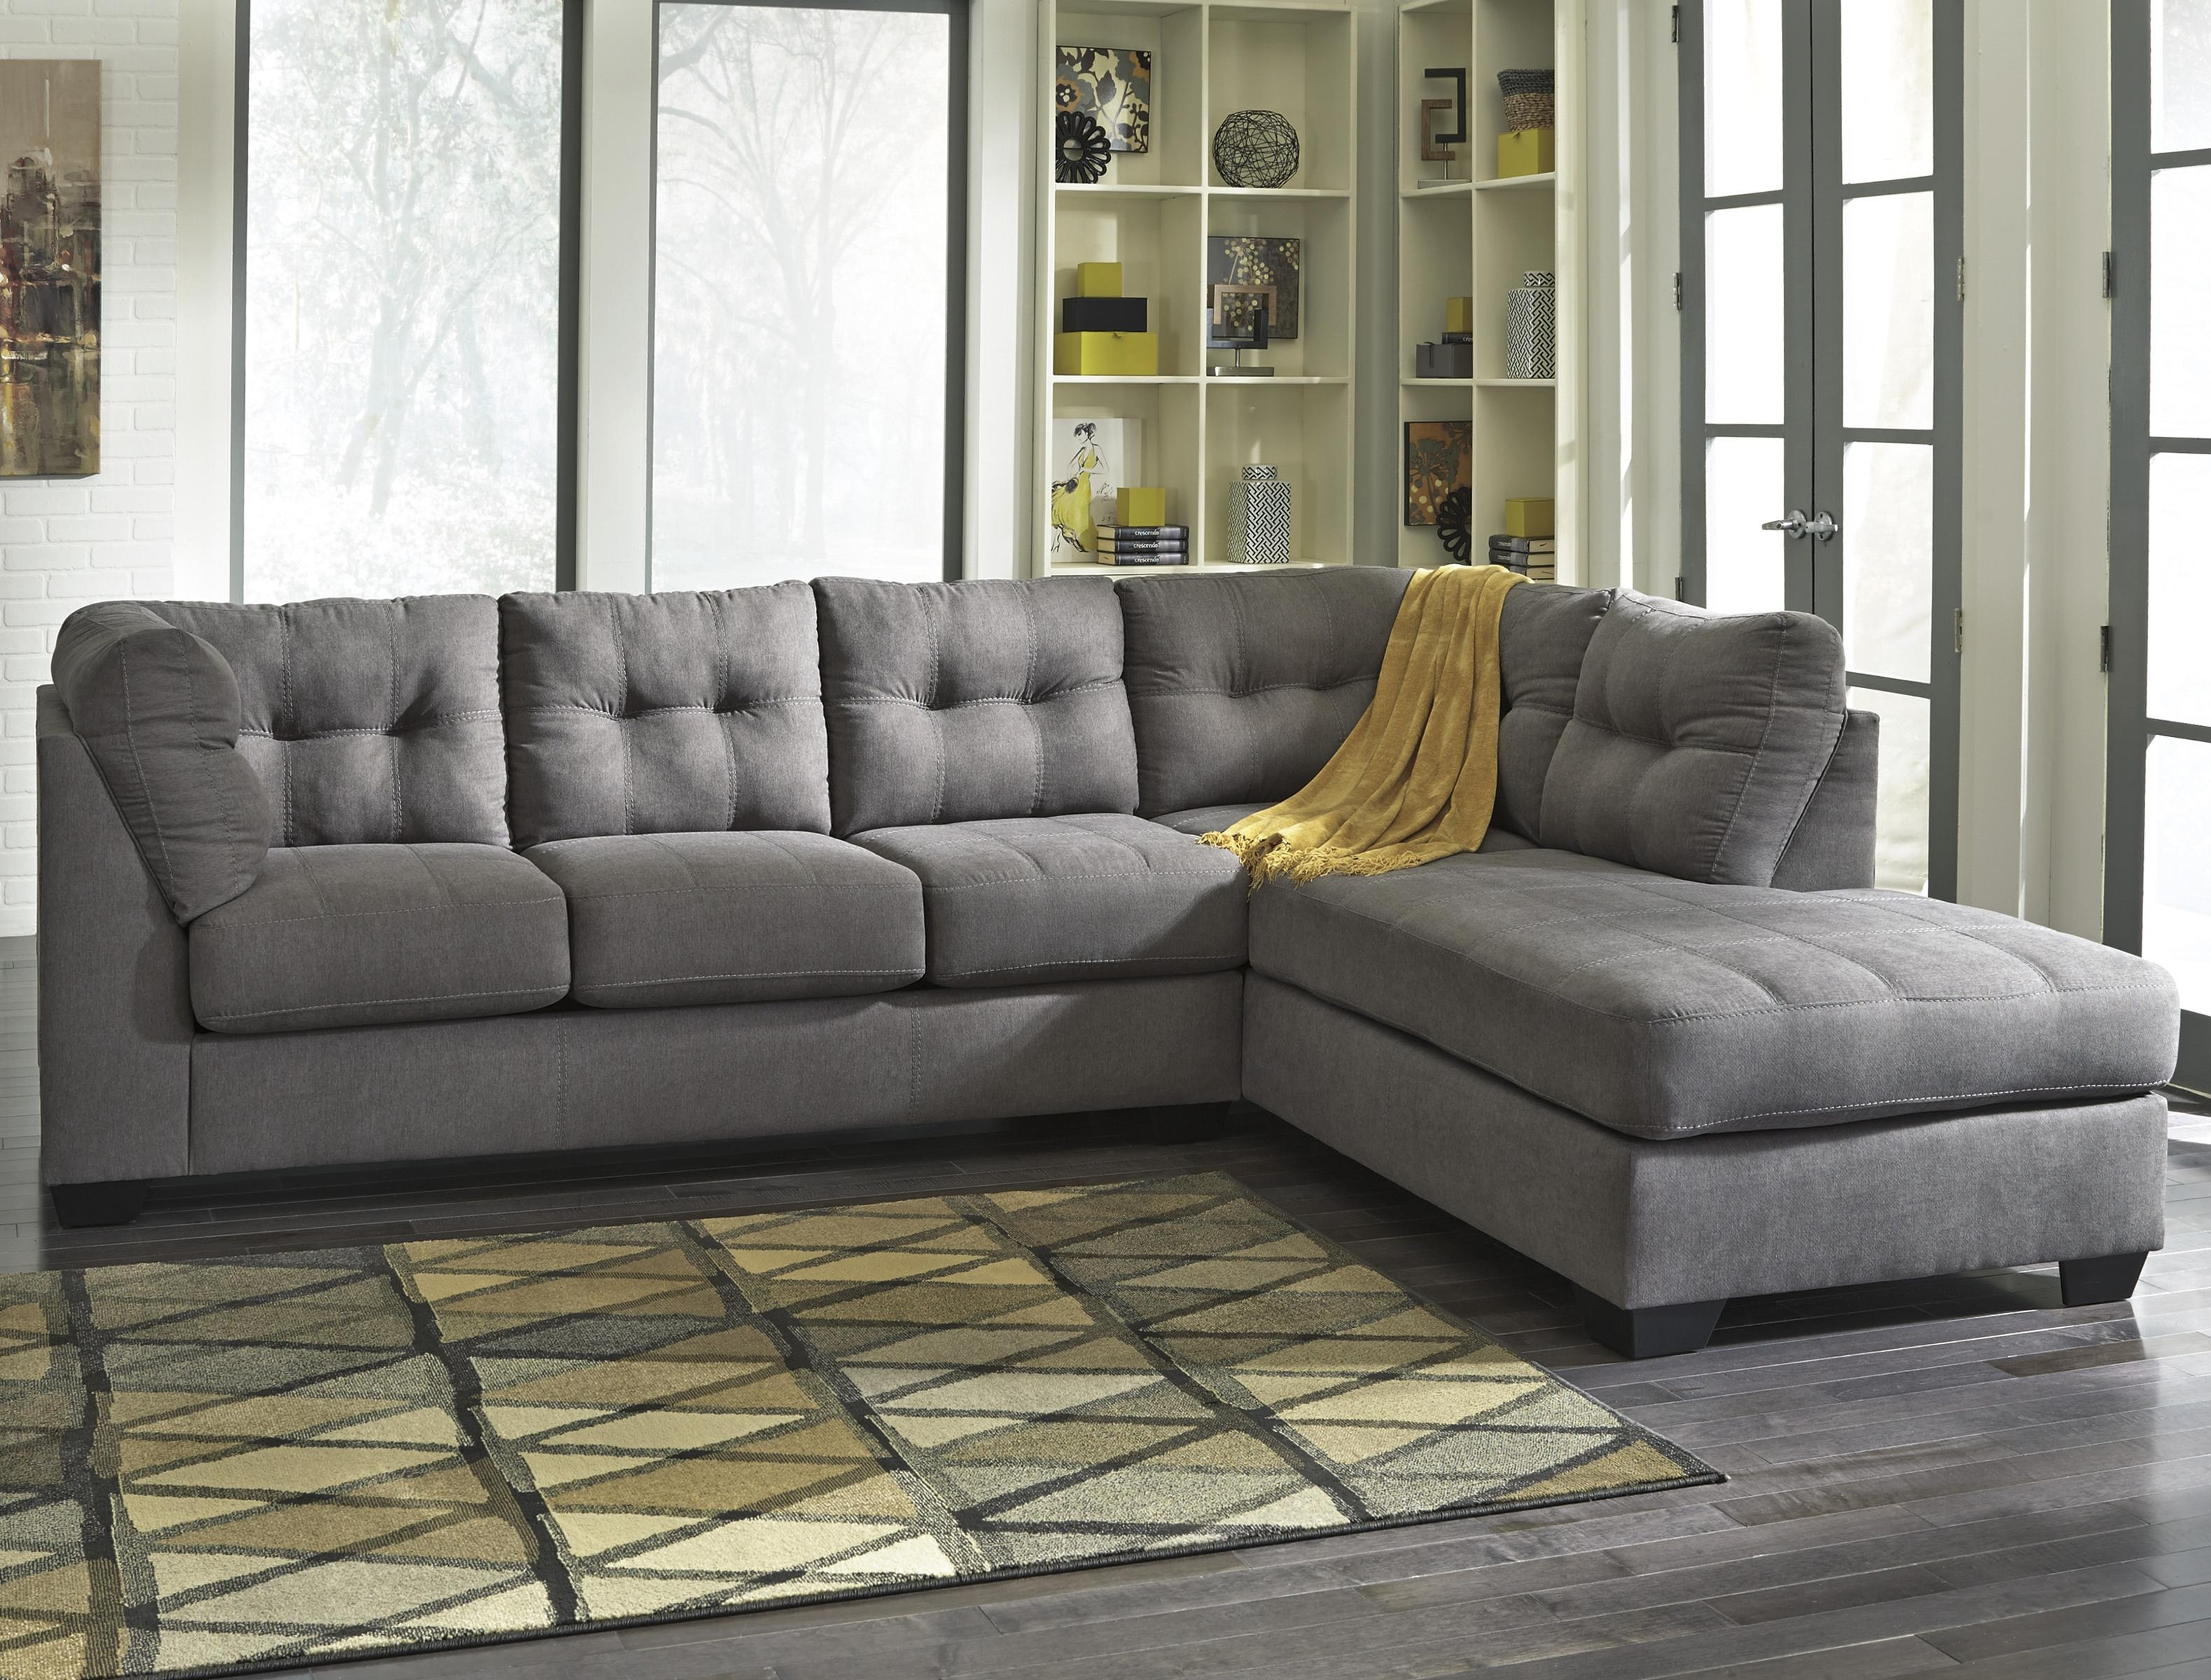 Benchcraft Maier - Charcoal 2-Piece Sectional W/ Sleeper Sofa with regard to Arrowmask 2 Piece Sectionals With Sleeper & Right Facing Chaise